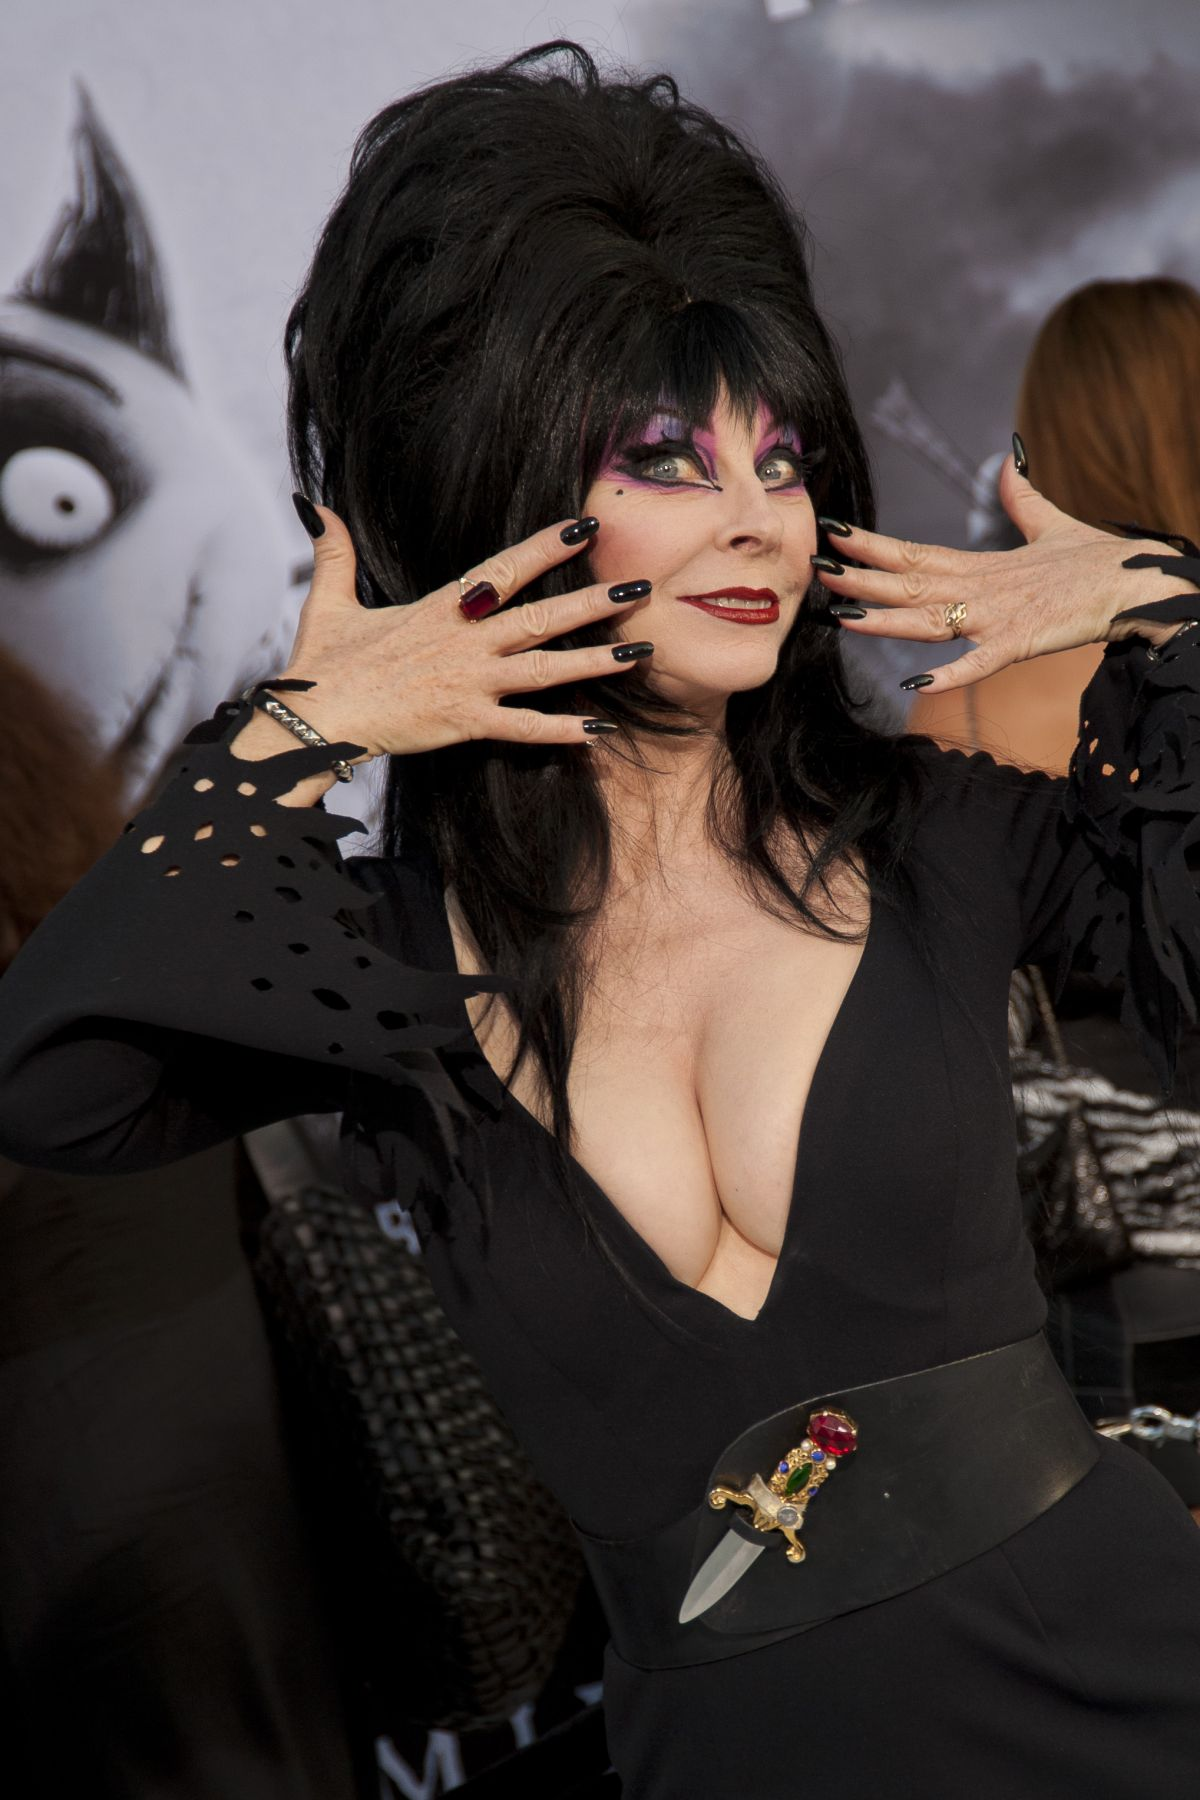 cassandra peterson now